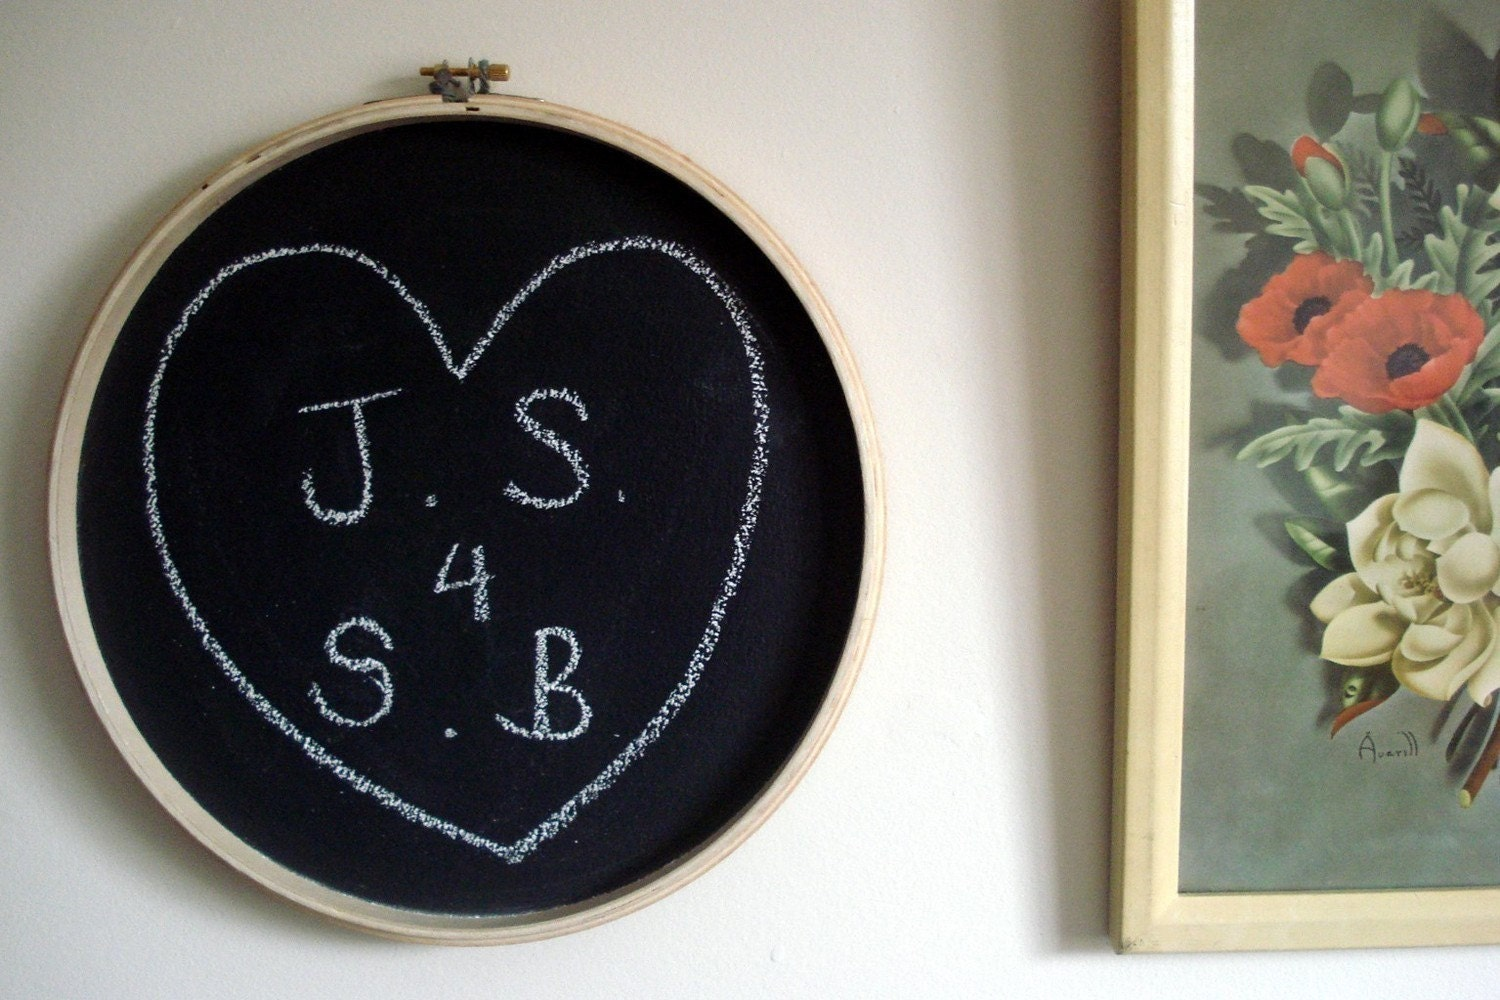 SALE - Small Embroidery Hoop Chalkboard - Plain